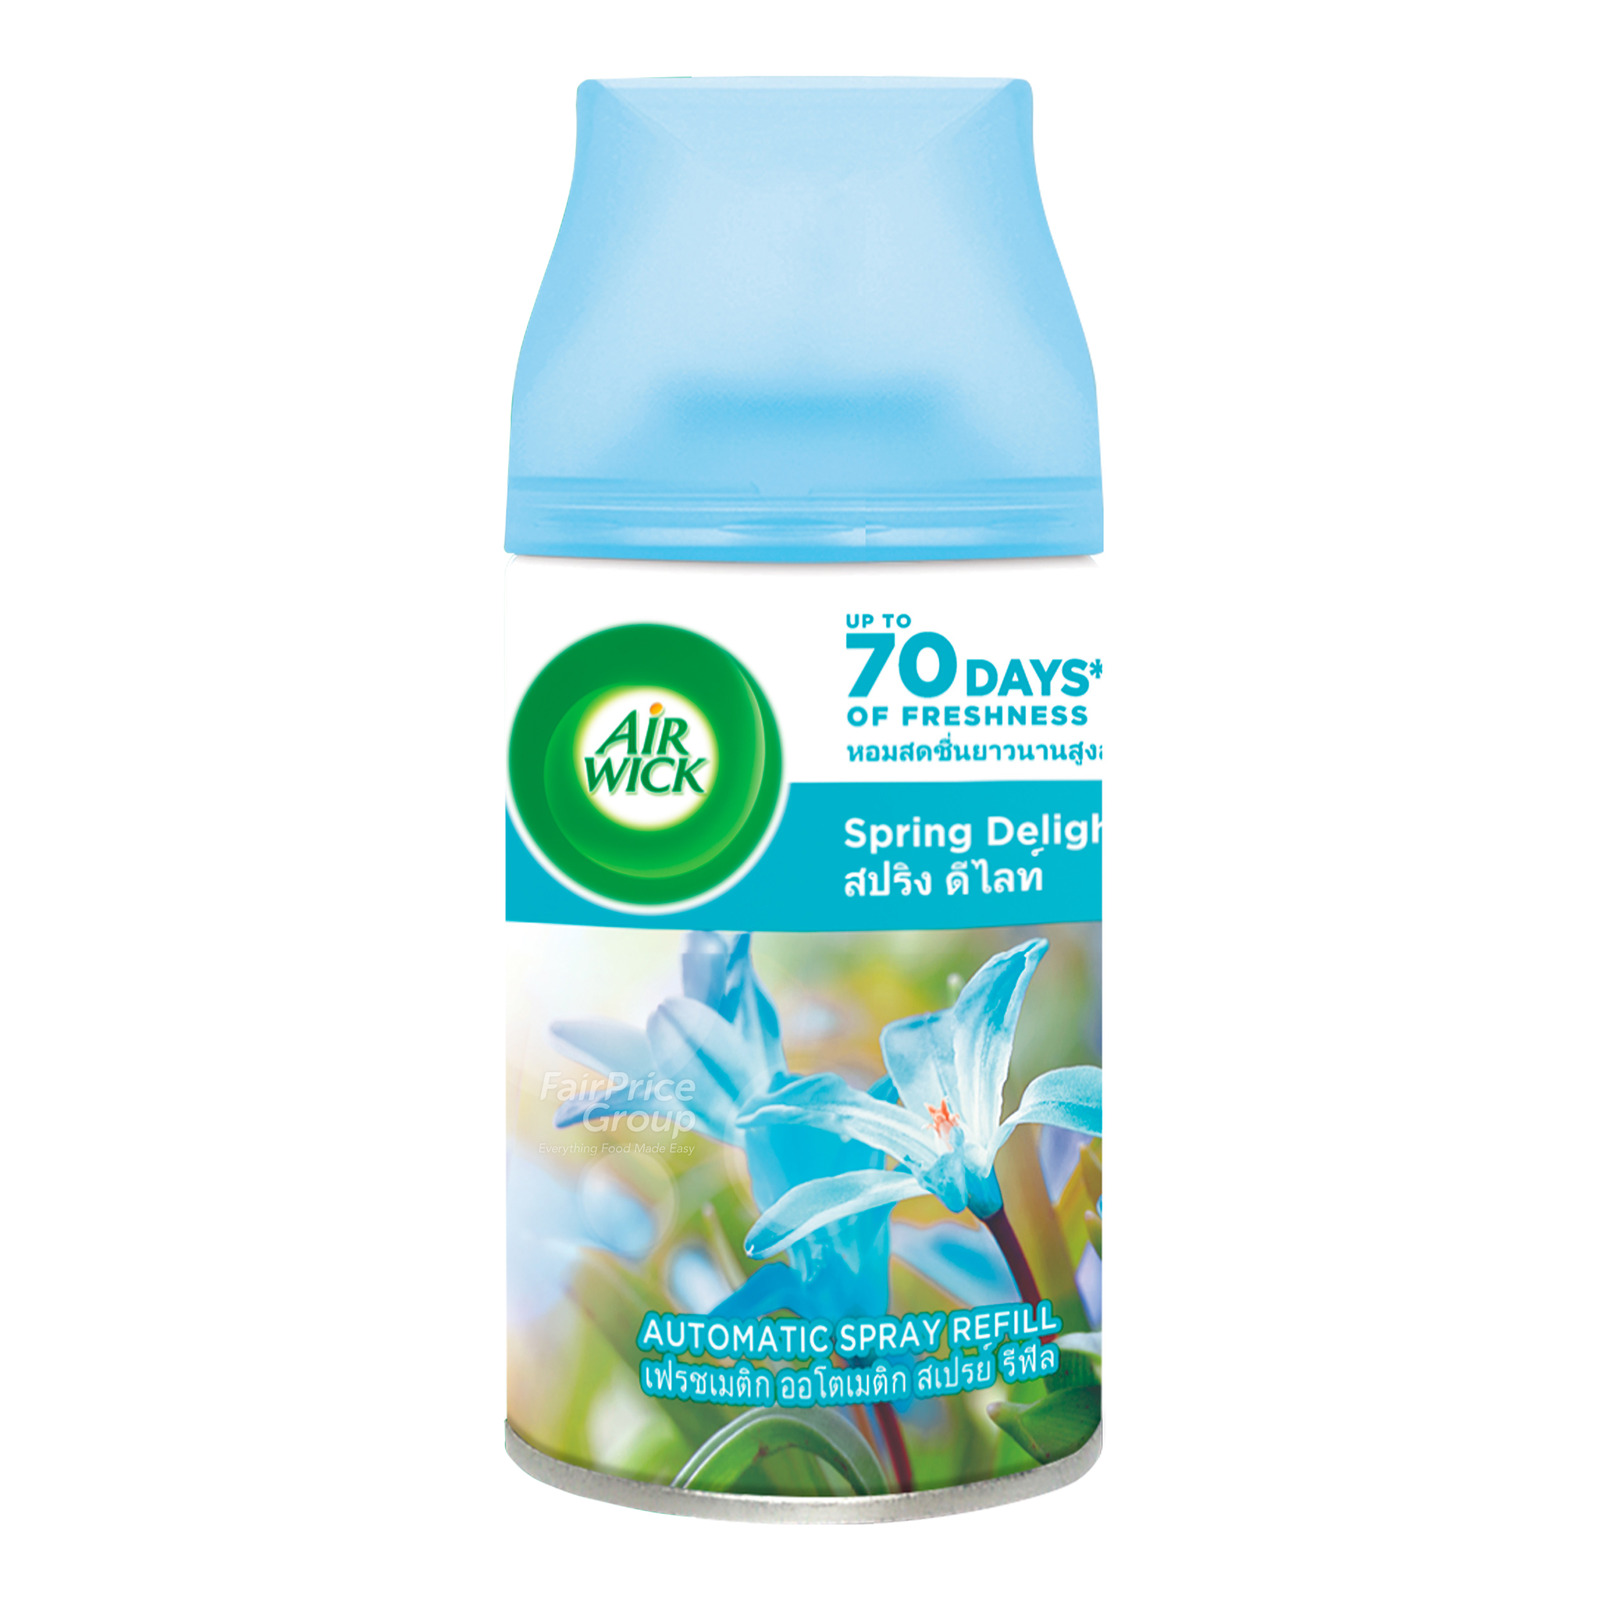 Air Wick Freshmatic Compact Automatic Spray Spring Delight Refill